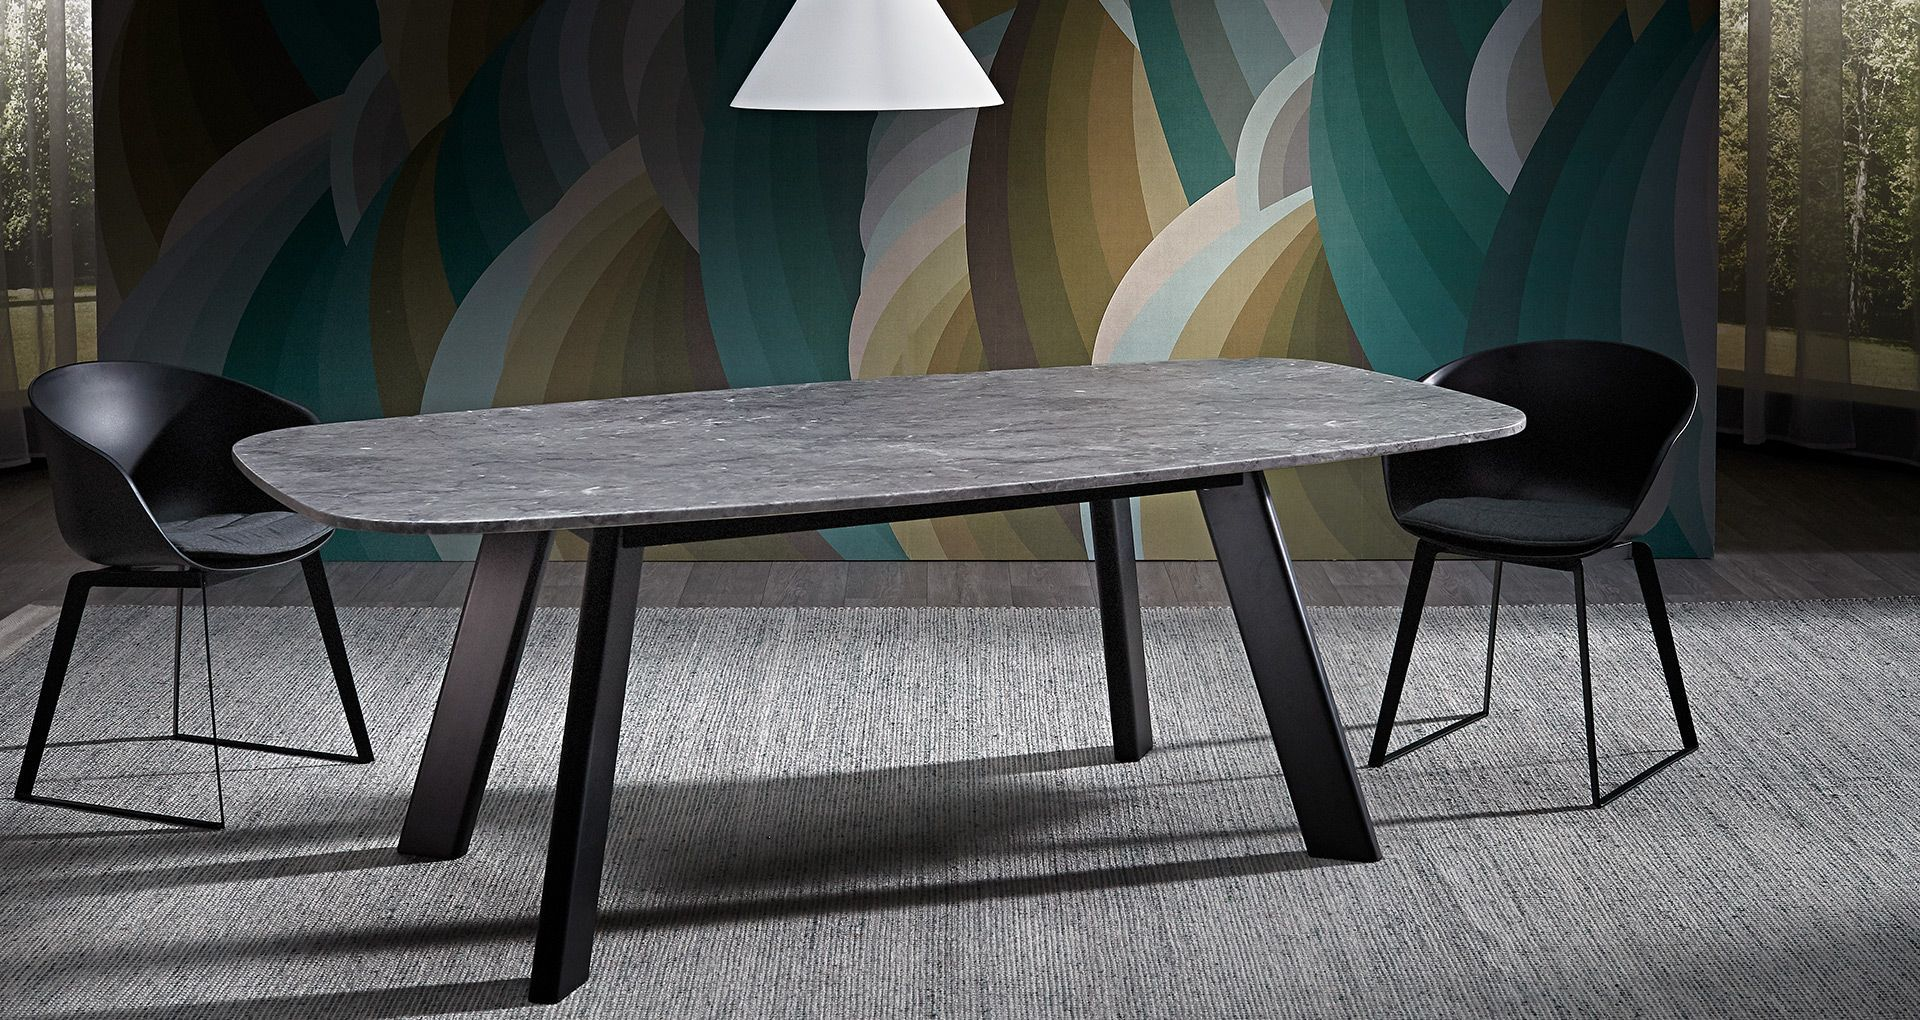 Buchanan Nick Scali In 2021 Dining Table Marble Upholstered Furniture Home Decor [ 1020 x 1920 Pixel ]